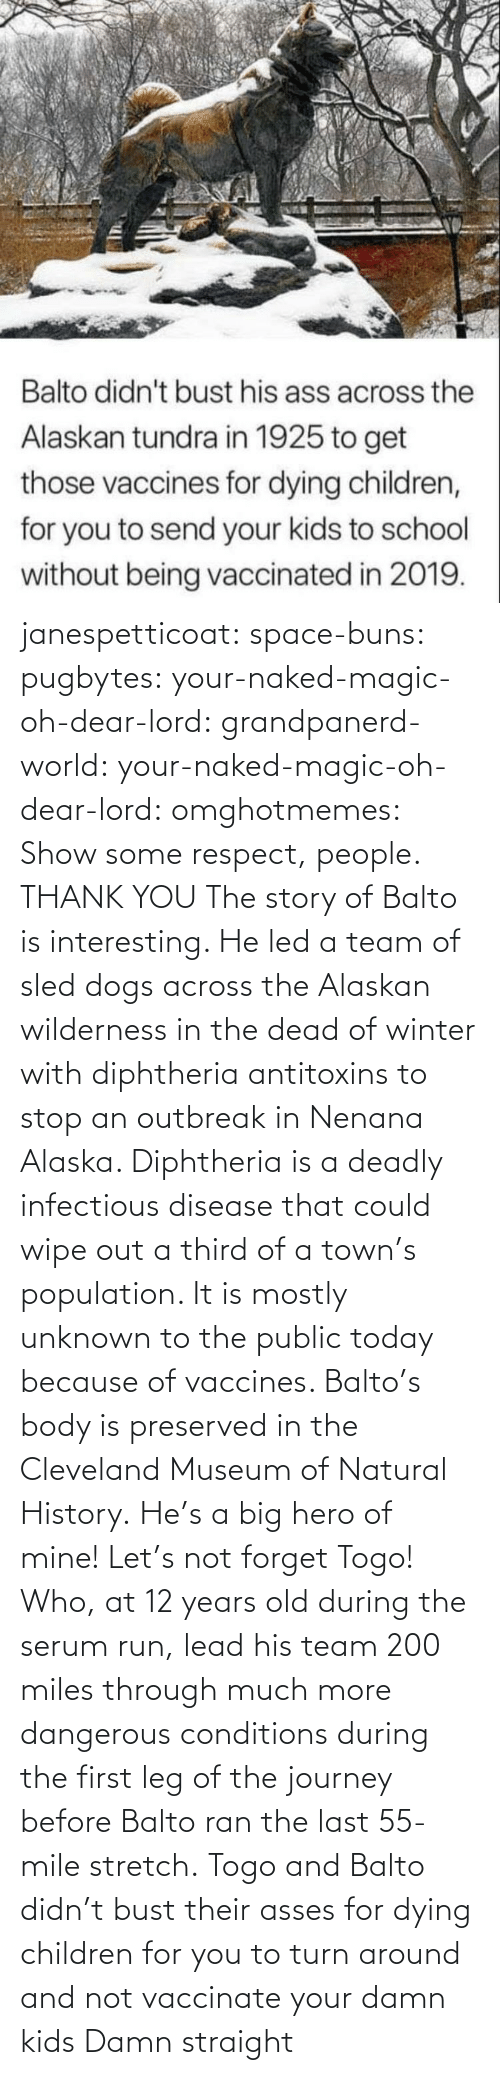 population: janespetticoat: space-buns:  pugbytes:   your-naked-magic-oh-dear-lord:  grandpanerd-world:   your-naked-magic-oh-dear-lord:  omghotmemes: Show some respect, people.  THANK YOU   The story of Balto is interesting. He led a team of sled dogs across the Alaskan wilderness in the dead of winter with diphtheria antitoxins to stop an outbreak in Nenana Alaska. Diphtheria is a deadly infectious disease that could wipe out a third of a town's population. It is mostly unknown to the public today because of vaccines. Balto's body is preserved in the Cleveland Museum of Natural History.   He's a big hero of mine!   Let's not forget Togo! Who, at 12 years old during the serum run, lead his team 200 miles through much more dangerous conditions during the first leg of the journey before Balto ran the last 55-mile stretch.   Togo and Balto didn't bust their asses for dying children for you to turn around and not vaccinate your damn kids    Damn straight